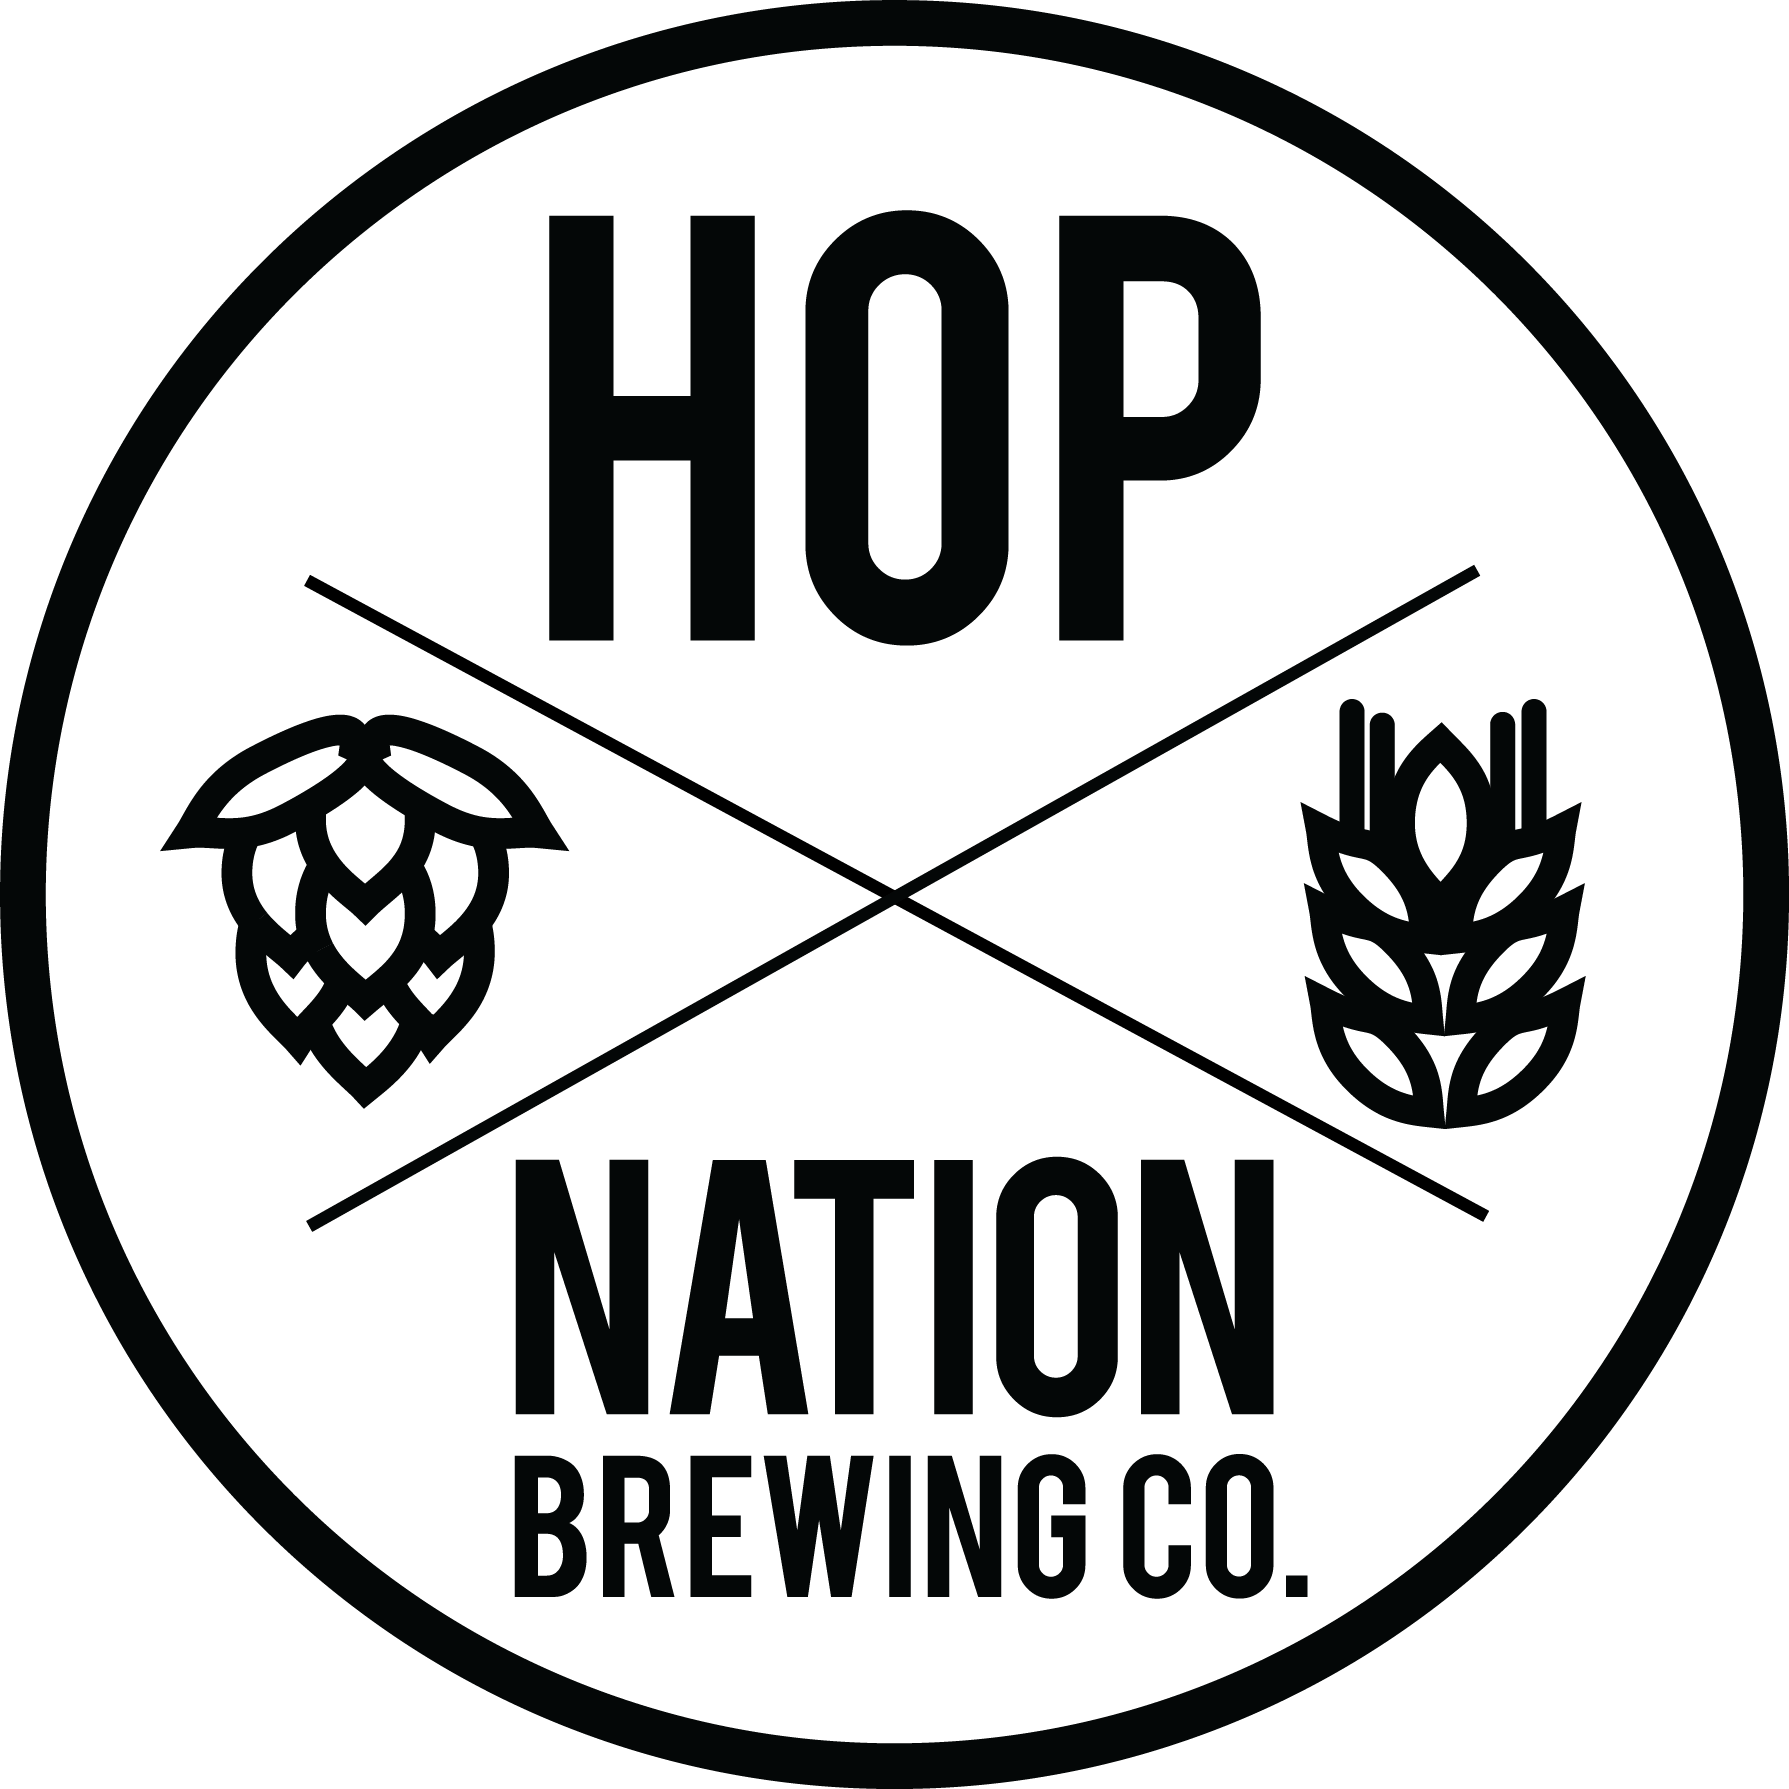 clipart download Hops clipart black and white. Hop nation brewing co